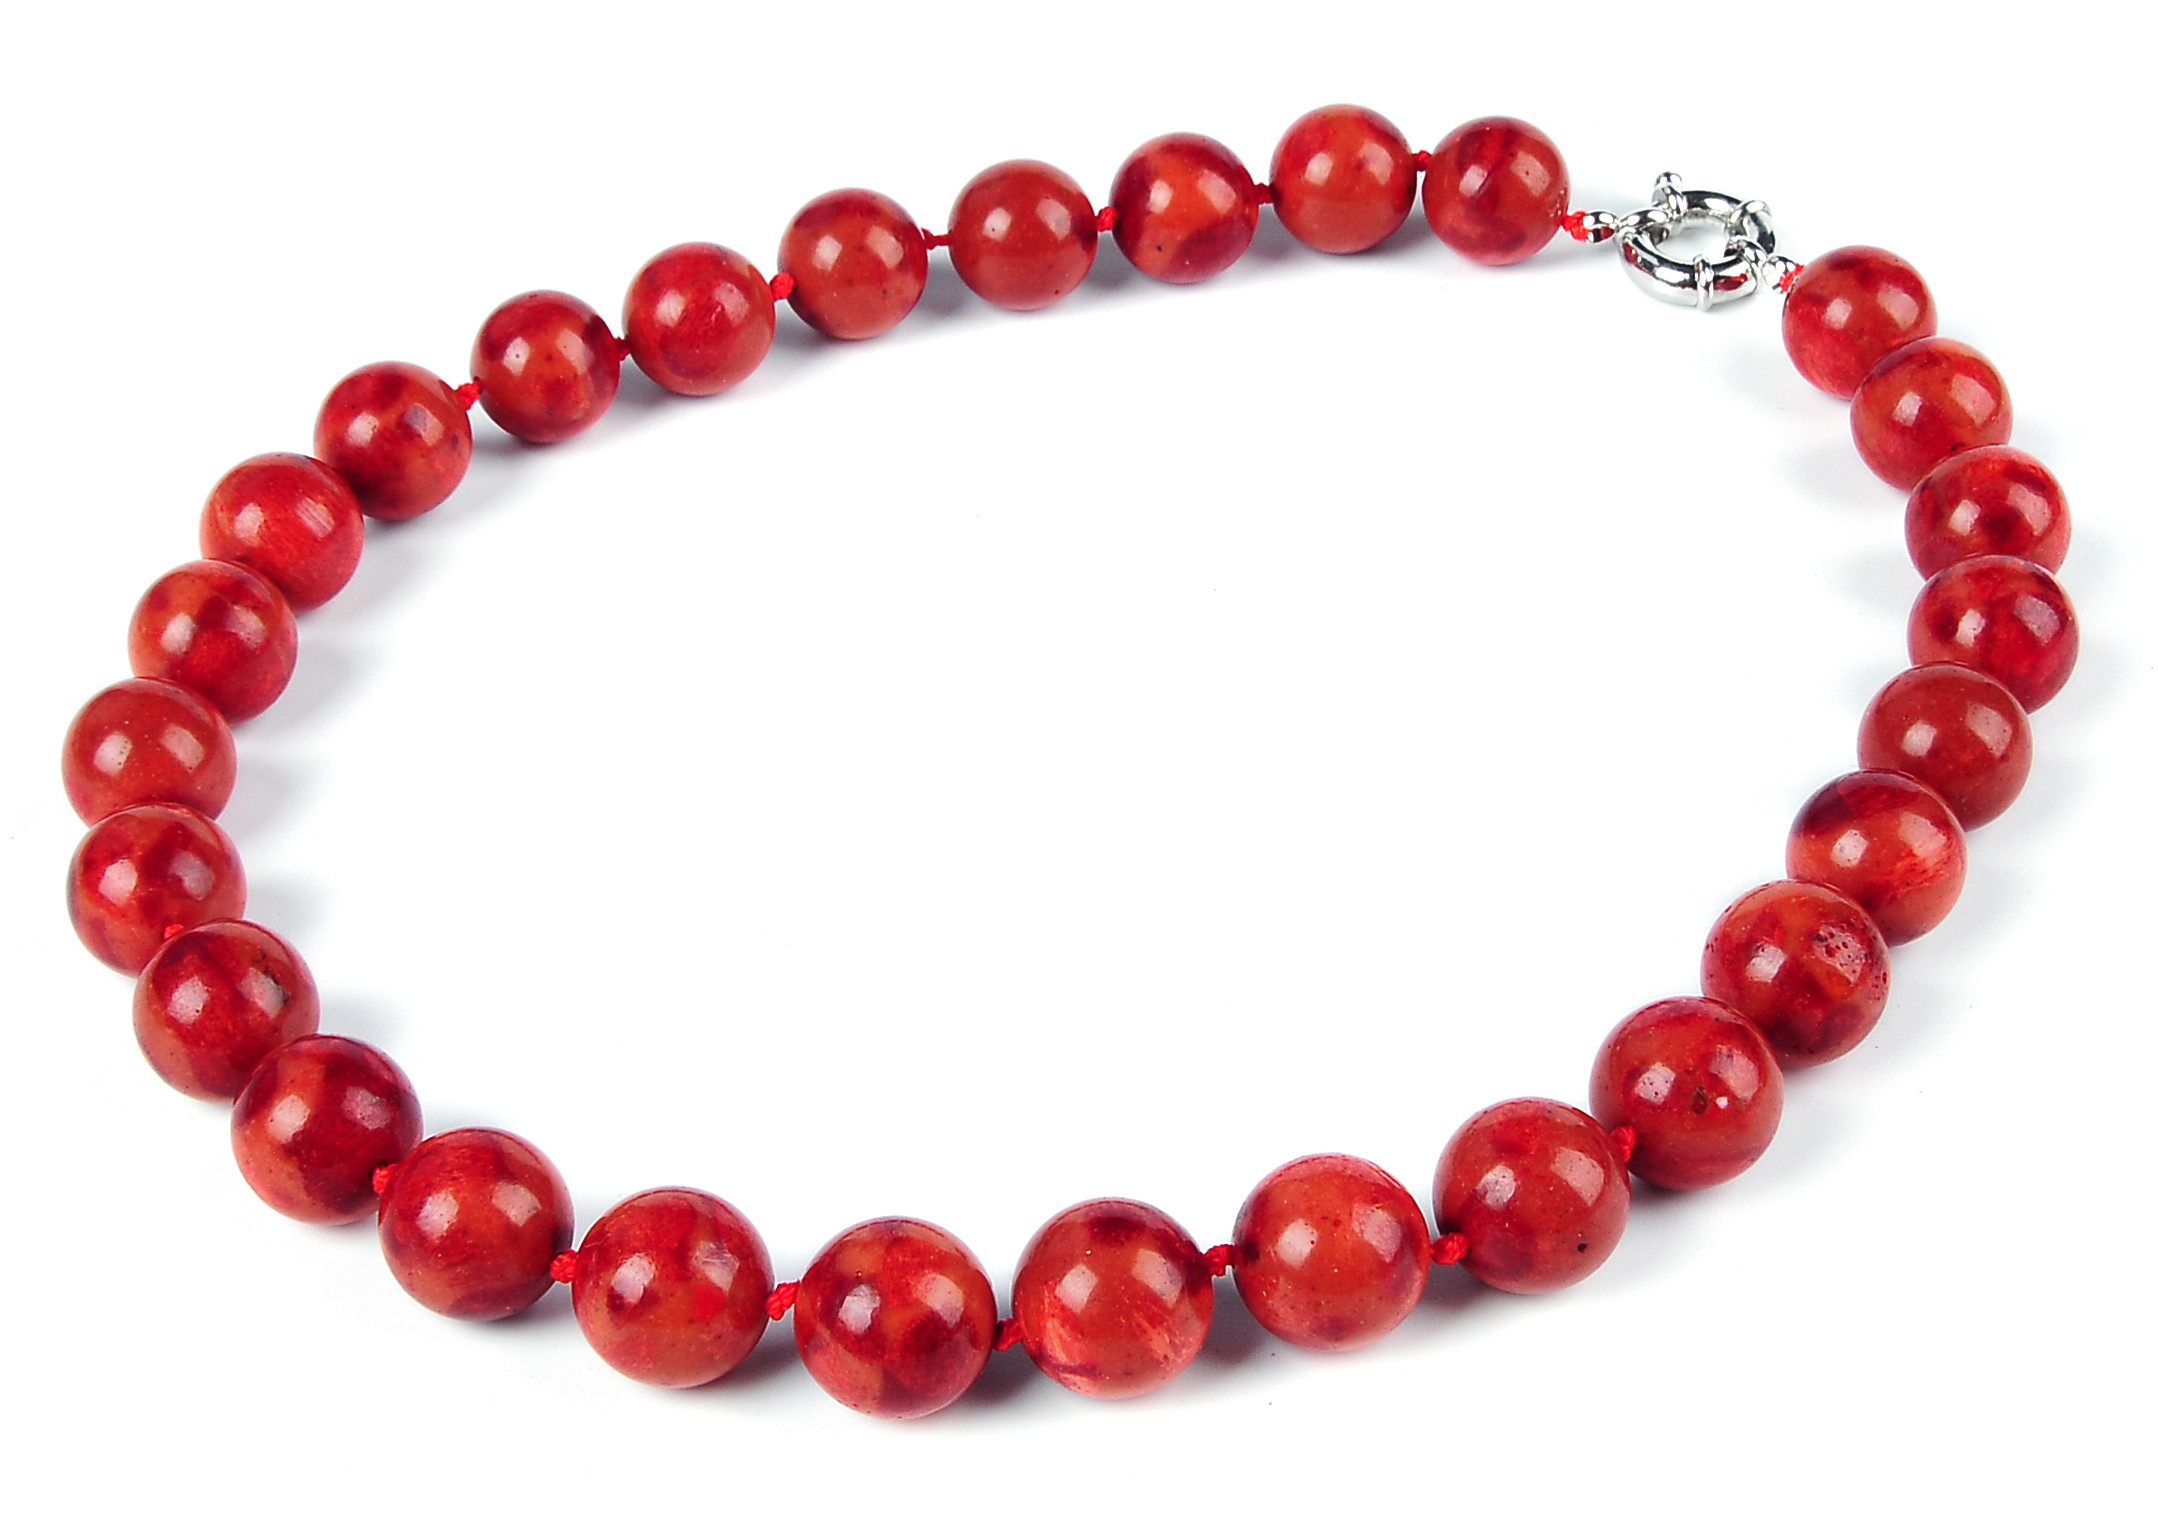 Large 14.5mm Round Red Sponge Coral Necklace -nk-cr8